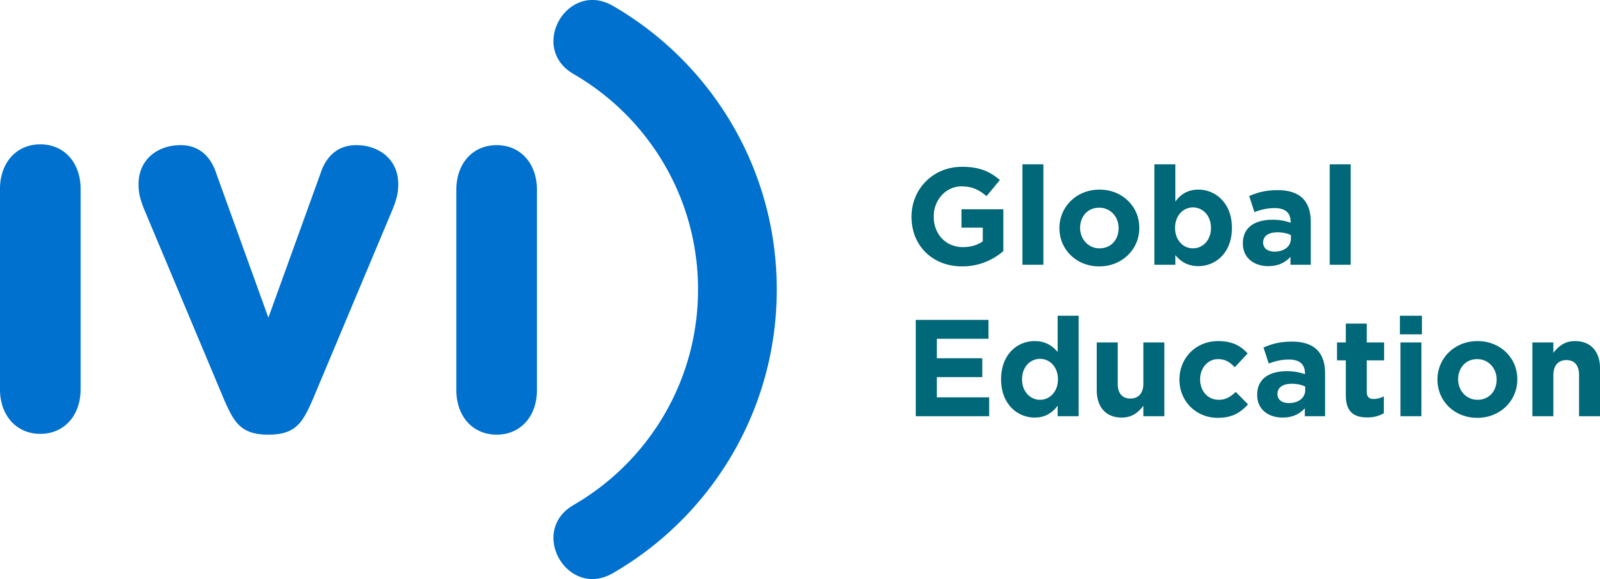 ivi global education logo